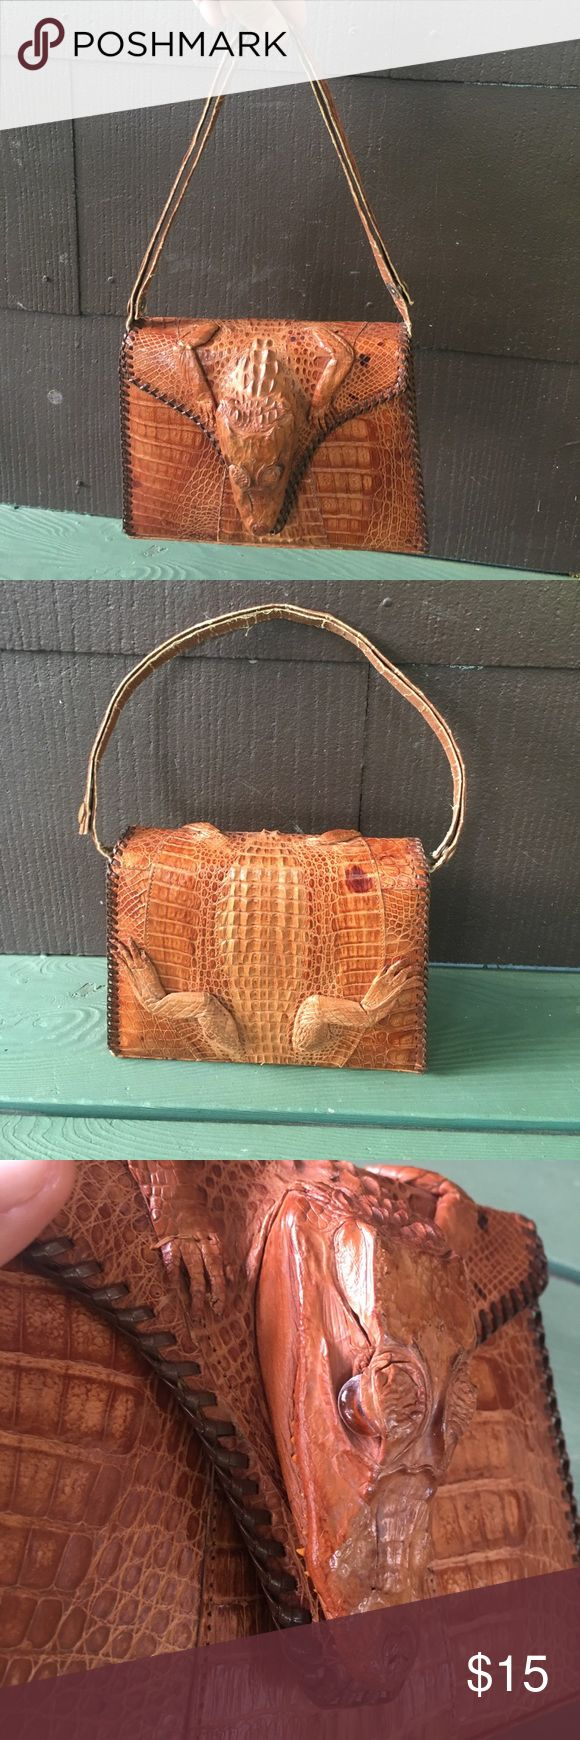 Vintage 70's kitch crocodile handbag Wild croc purse from the 70's in fair vintage condition. Strap is adjustable, inside change pocket. A total statement piece! Bags Mini Bags